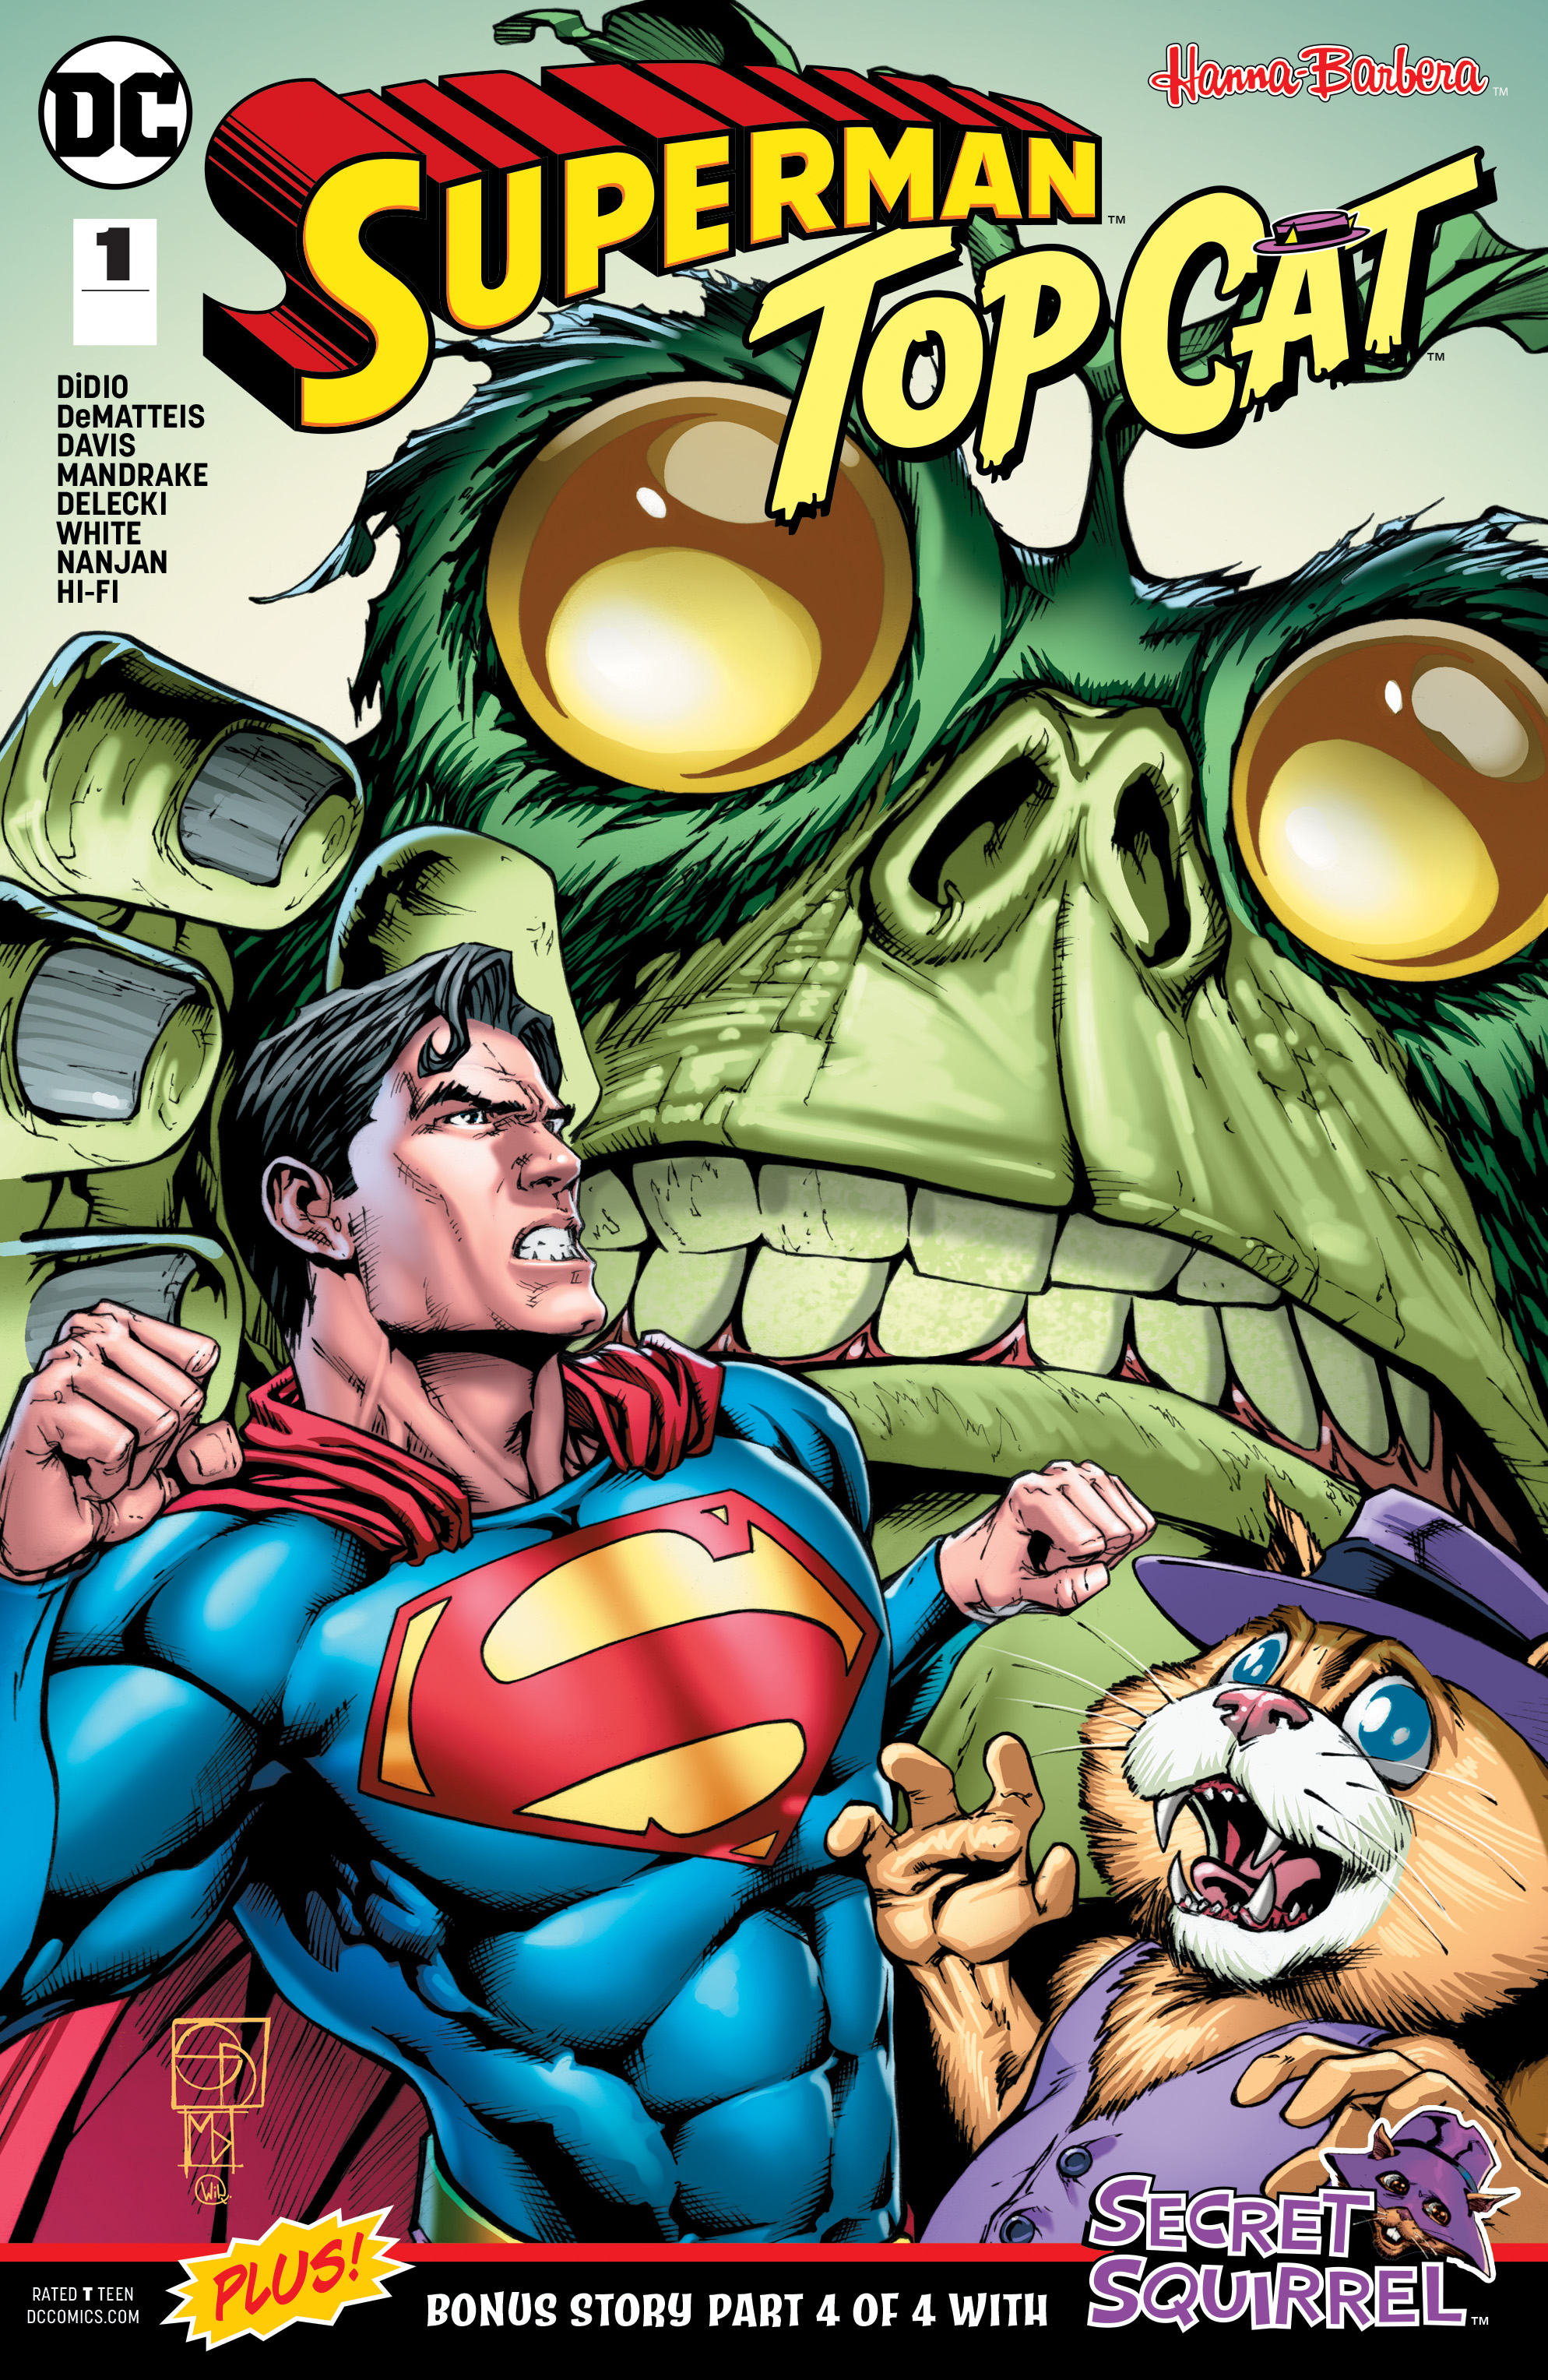 SUPERMAN TOP CAT SPECIAL #1